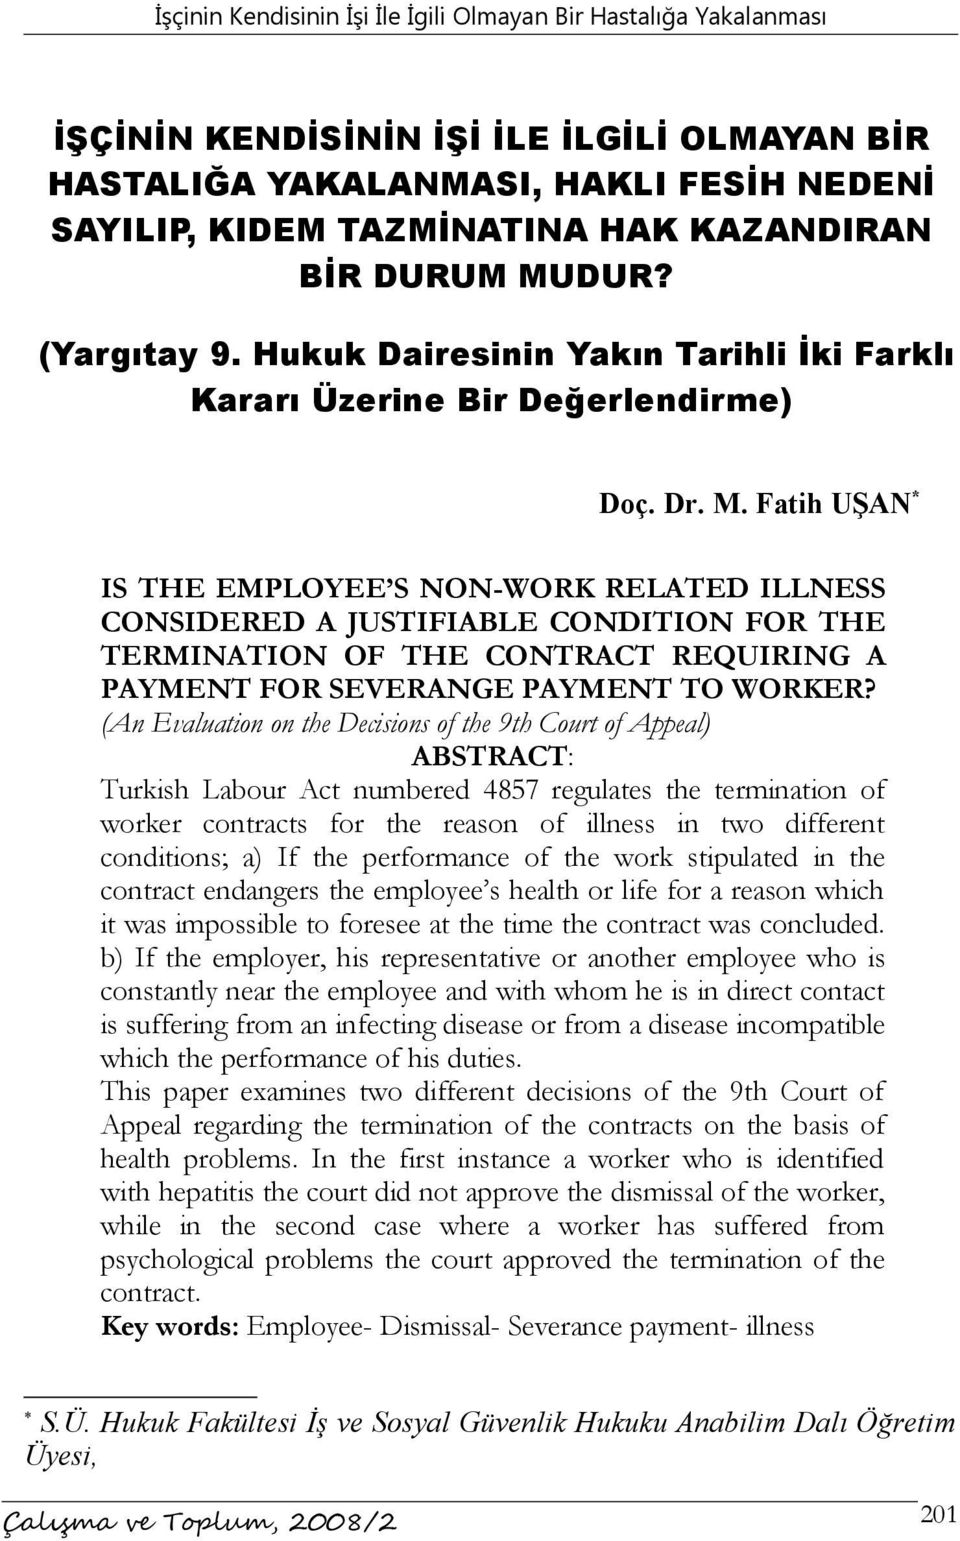 Fatih UŞAN * IS THE EMPLOYEE S NON-WORK RELATED ILLNESS CONSIDERED A JUSTIFIABLE CONDITION FOR THE TERMINATION OF THE CONTRACT REQUIRING A PAYMENT FOR SEVERANGE PAYMENT TO WORKER?